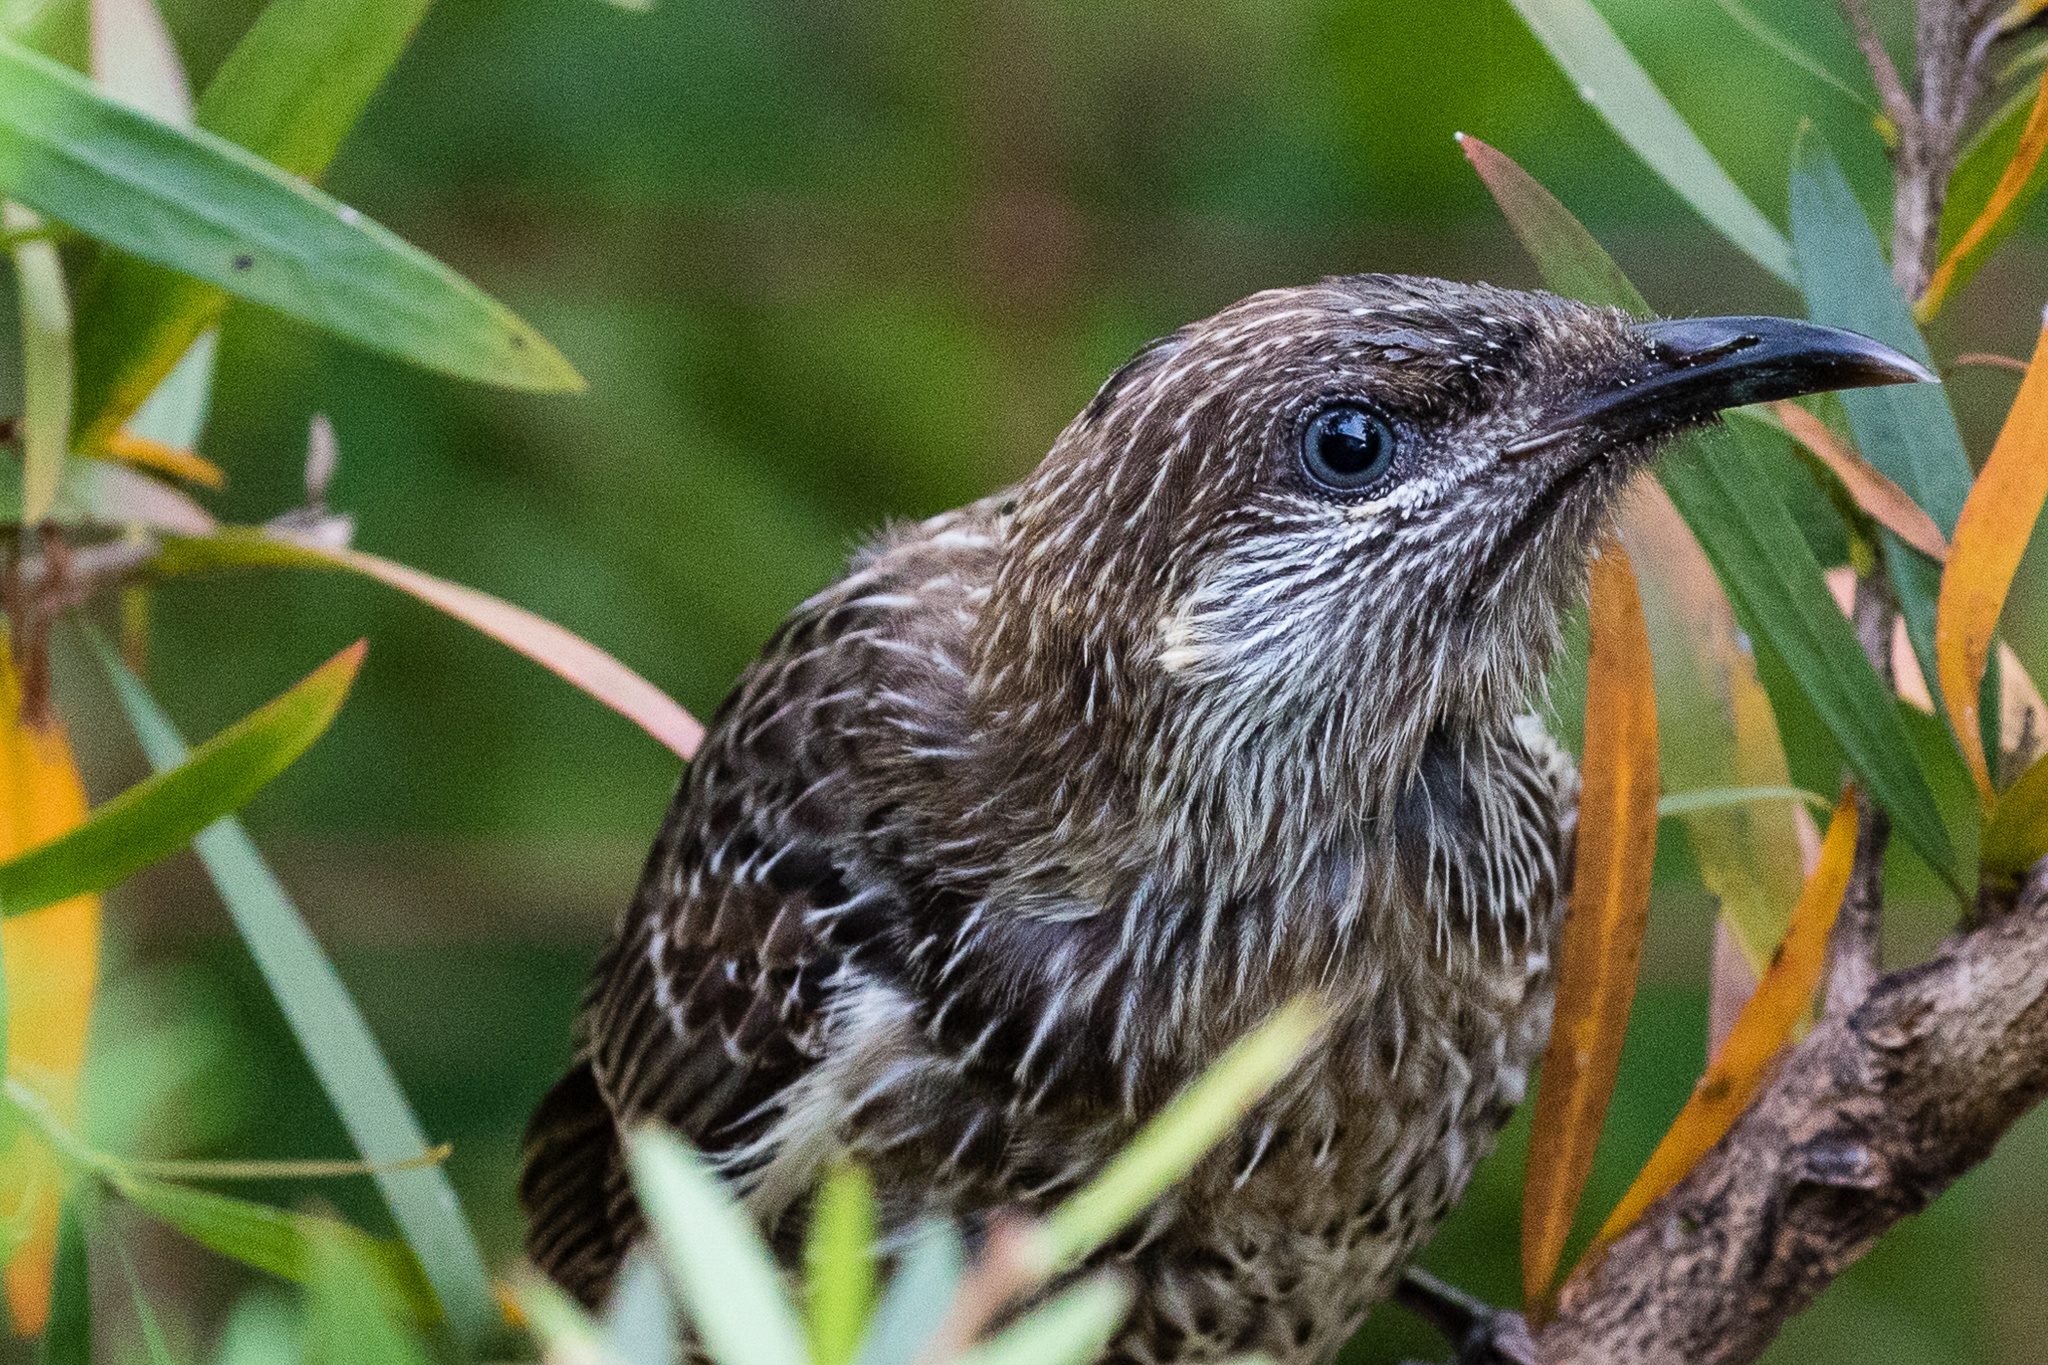 The Little Wattlebird (35 cm) is one of the large sedentary honeyeaters that dominate garden shrubs with large flowers, eg. grevilleas and bottle-brushes.